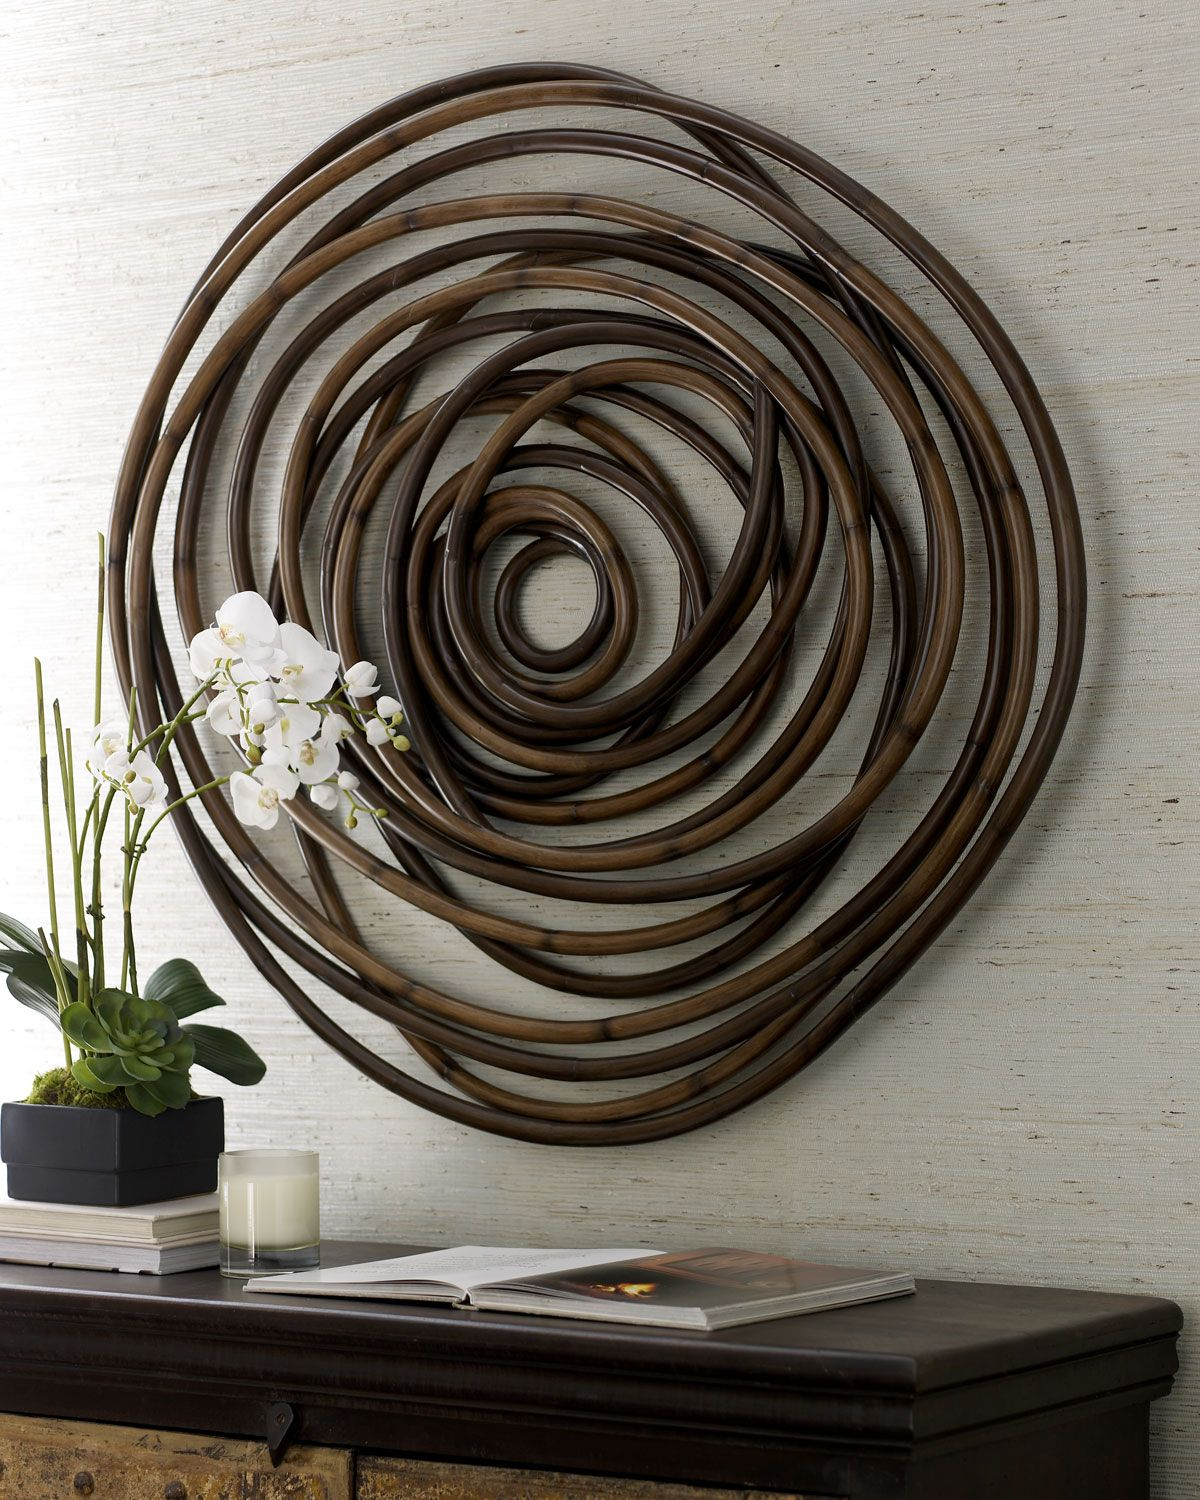 Wooden Swirl Wall Decor Neiman Marcus DIY and Crafts